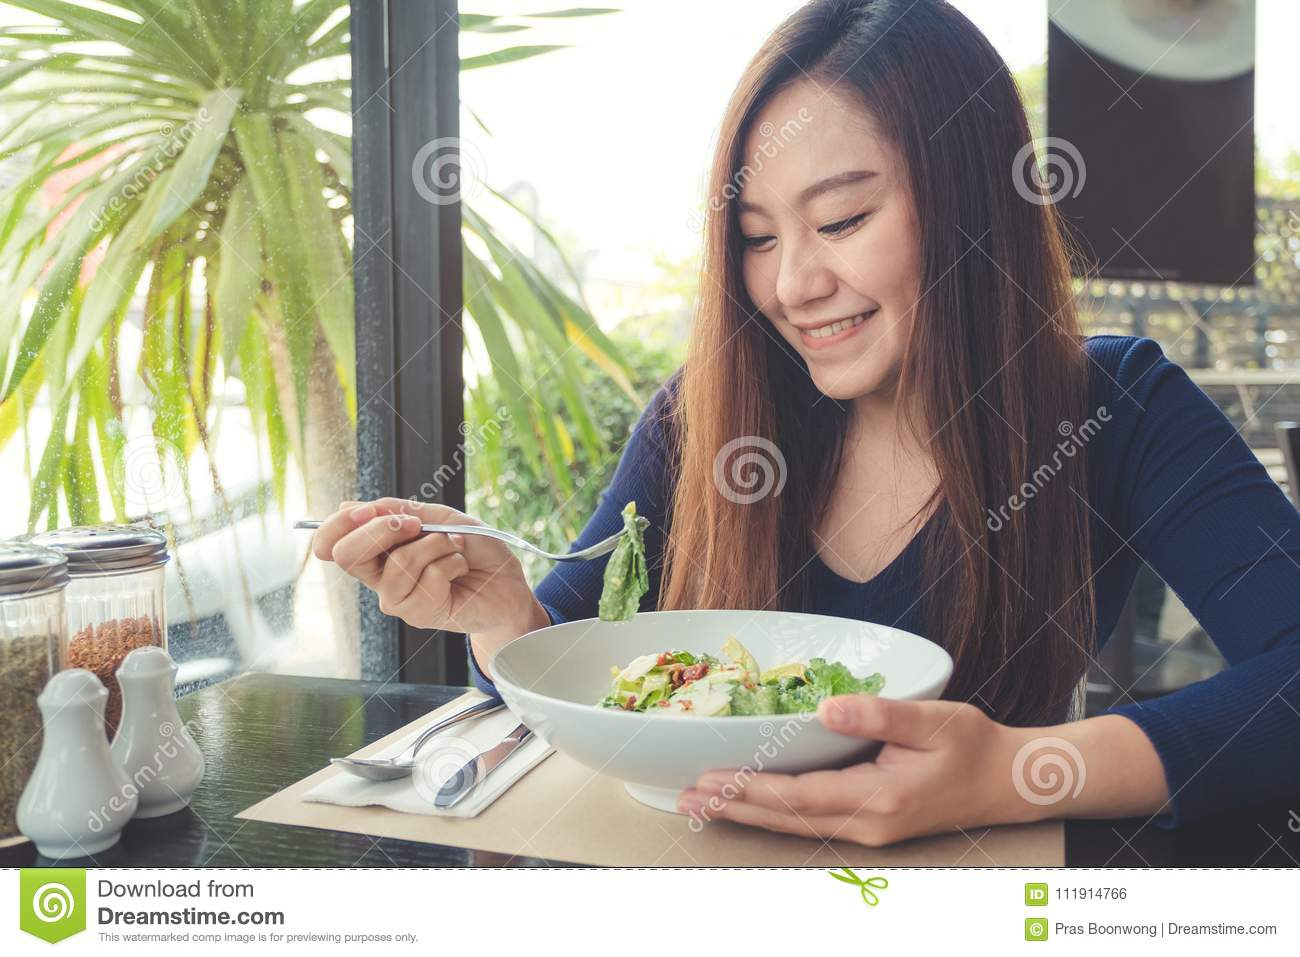 An Asian woman looking and enjoy eating Ceasar salad in restaurant